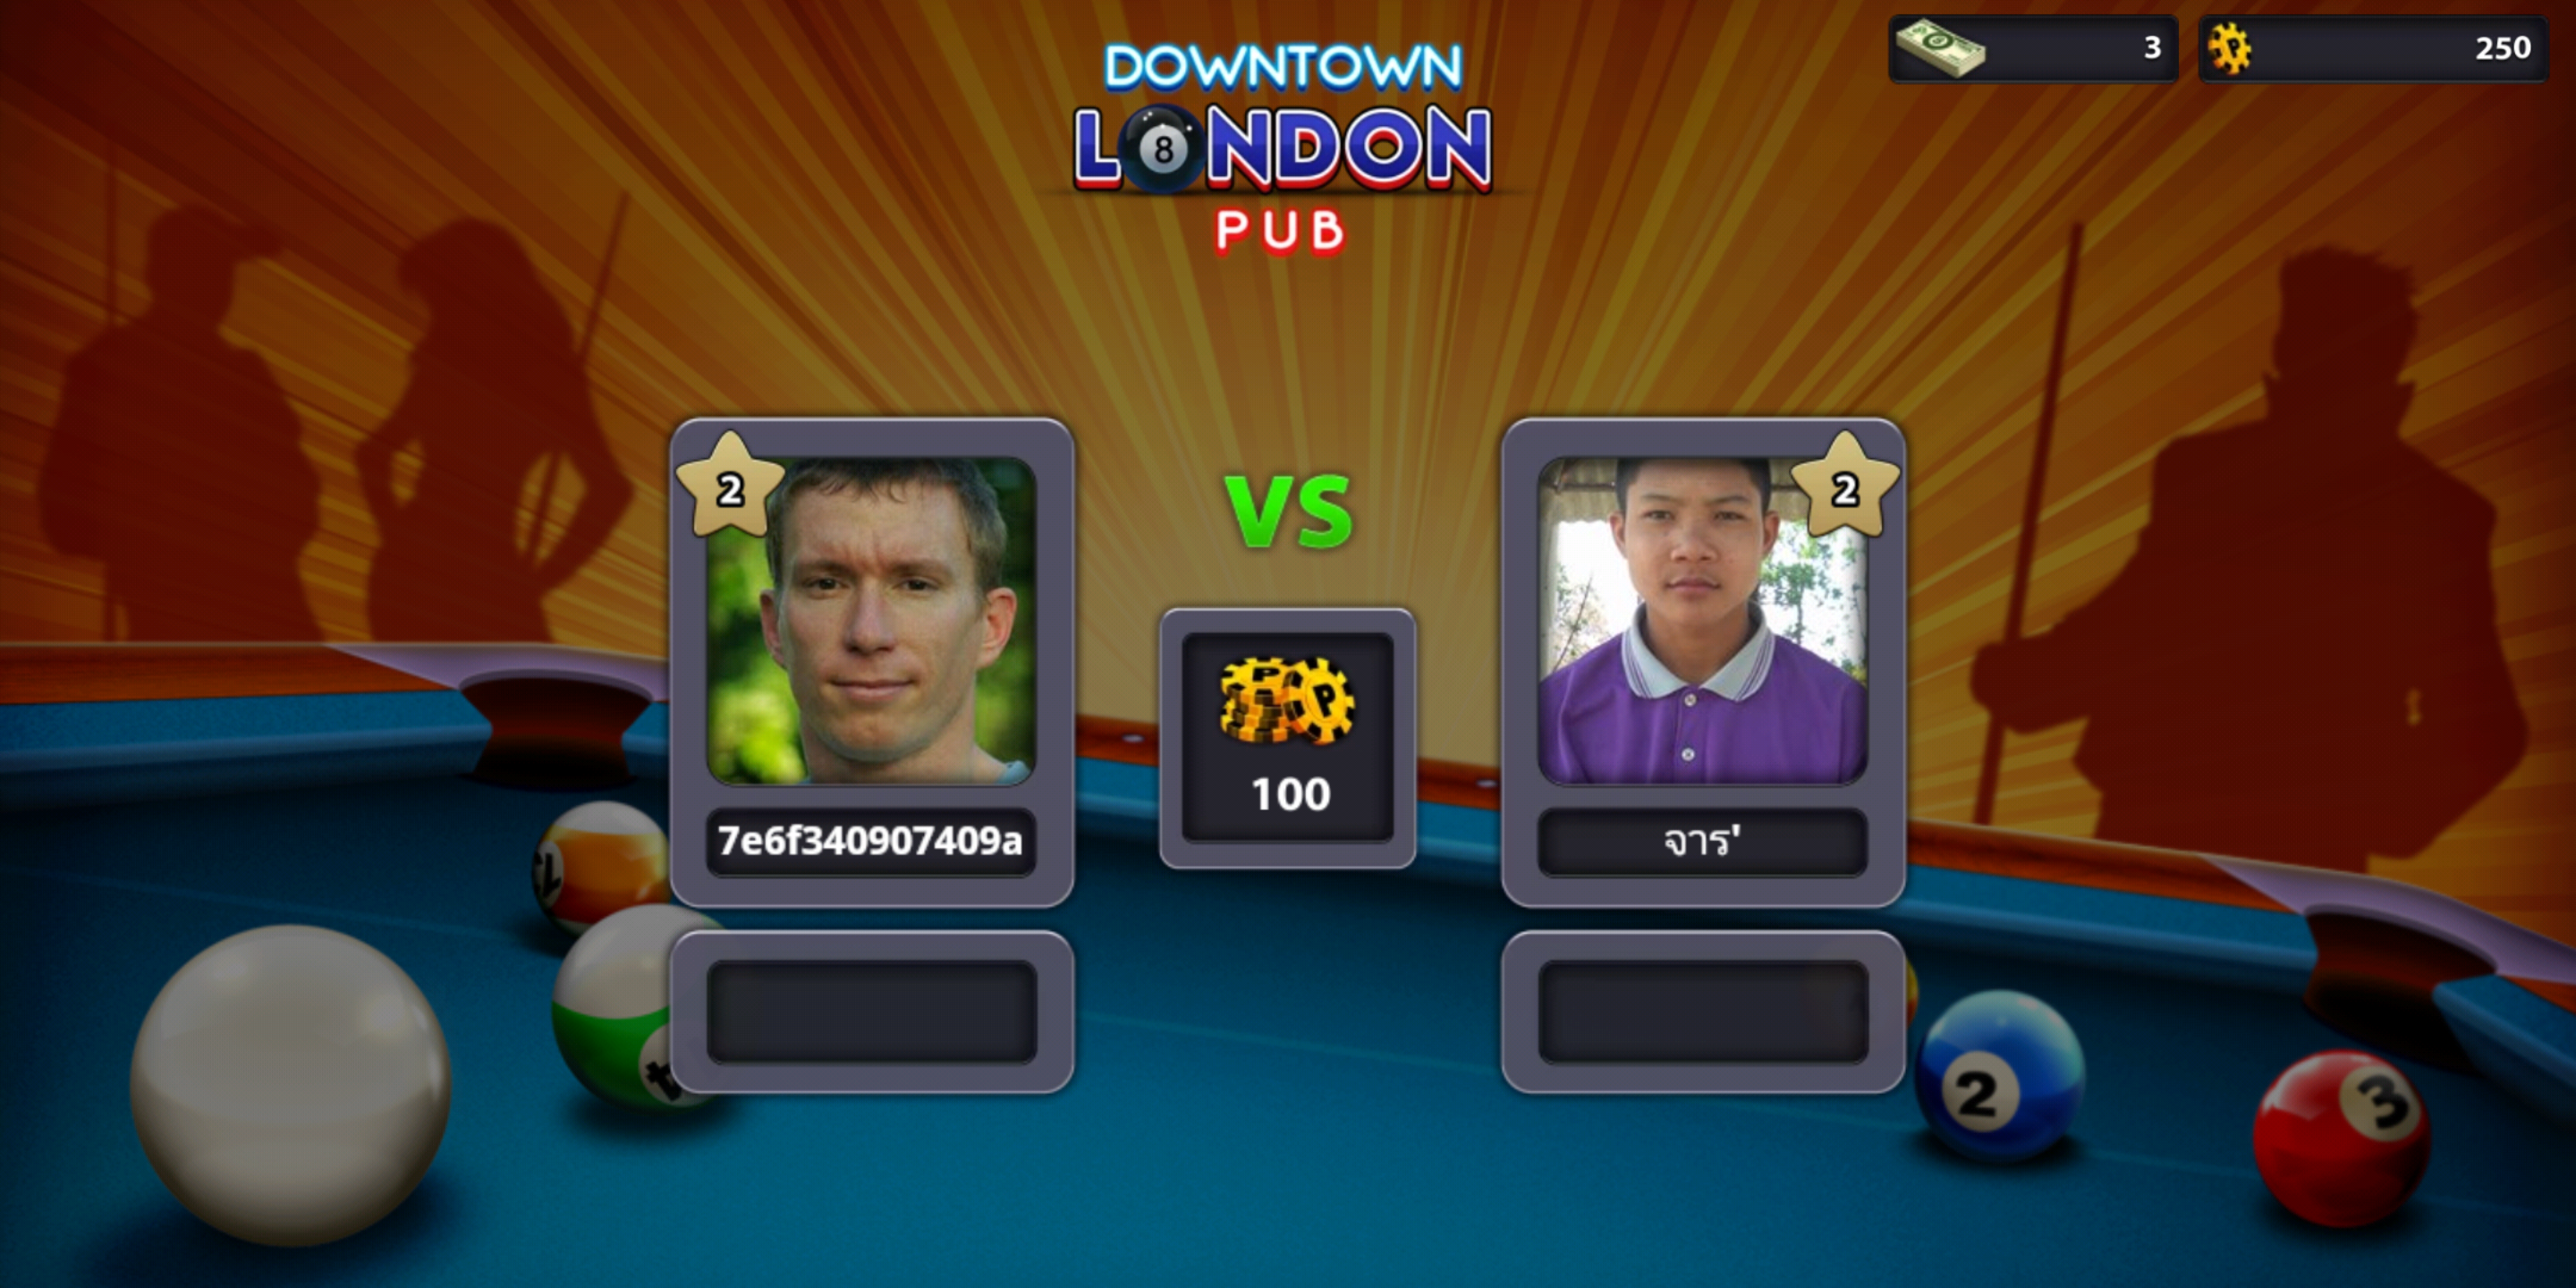 8 Ball Pool Generator App 8 ball pool review: head to the pool hall with a casual game